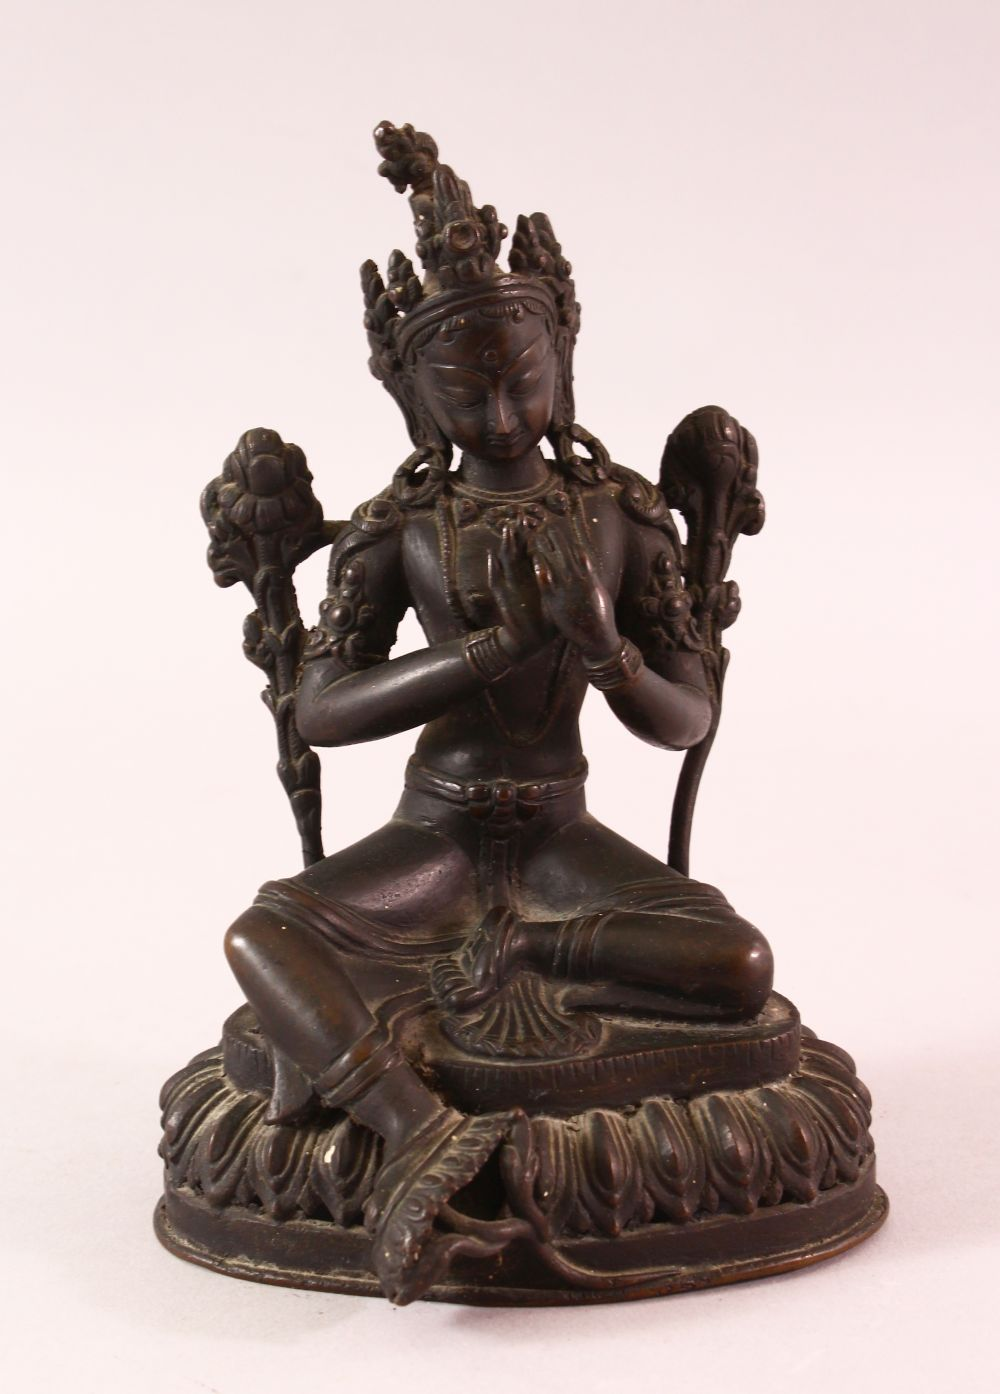 A 19TH CENTURY INDIAN BRONZE FIGURE OF SHIVA / DEITY, in a seated pose with hands together, upon